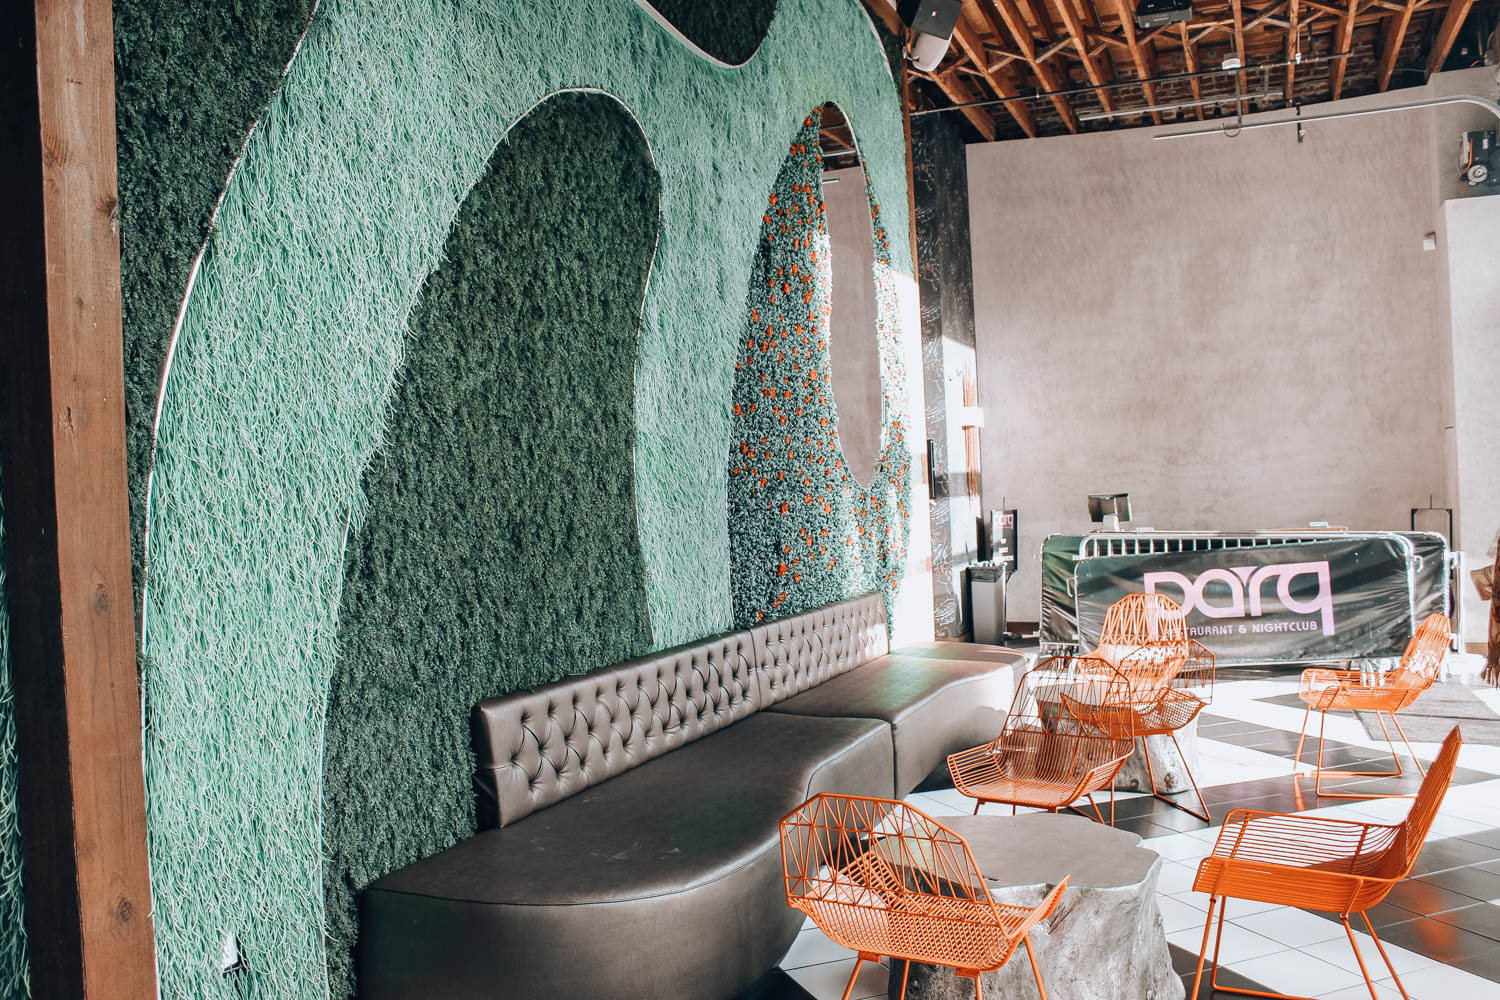 travel-guide-san-diego-recommendations-parq-restaurant2